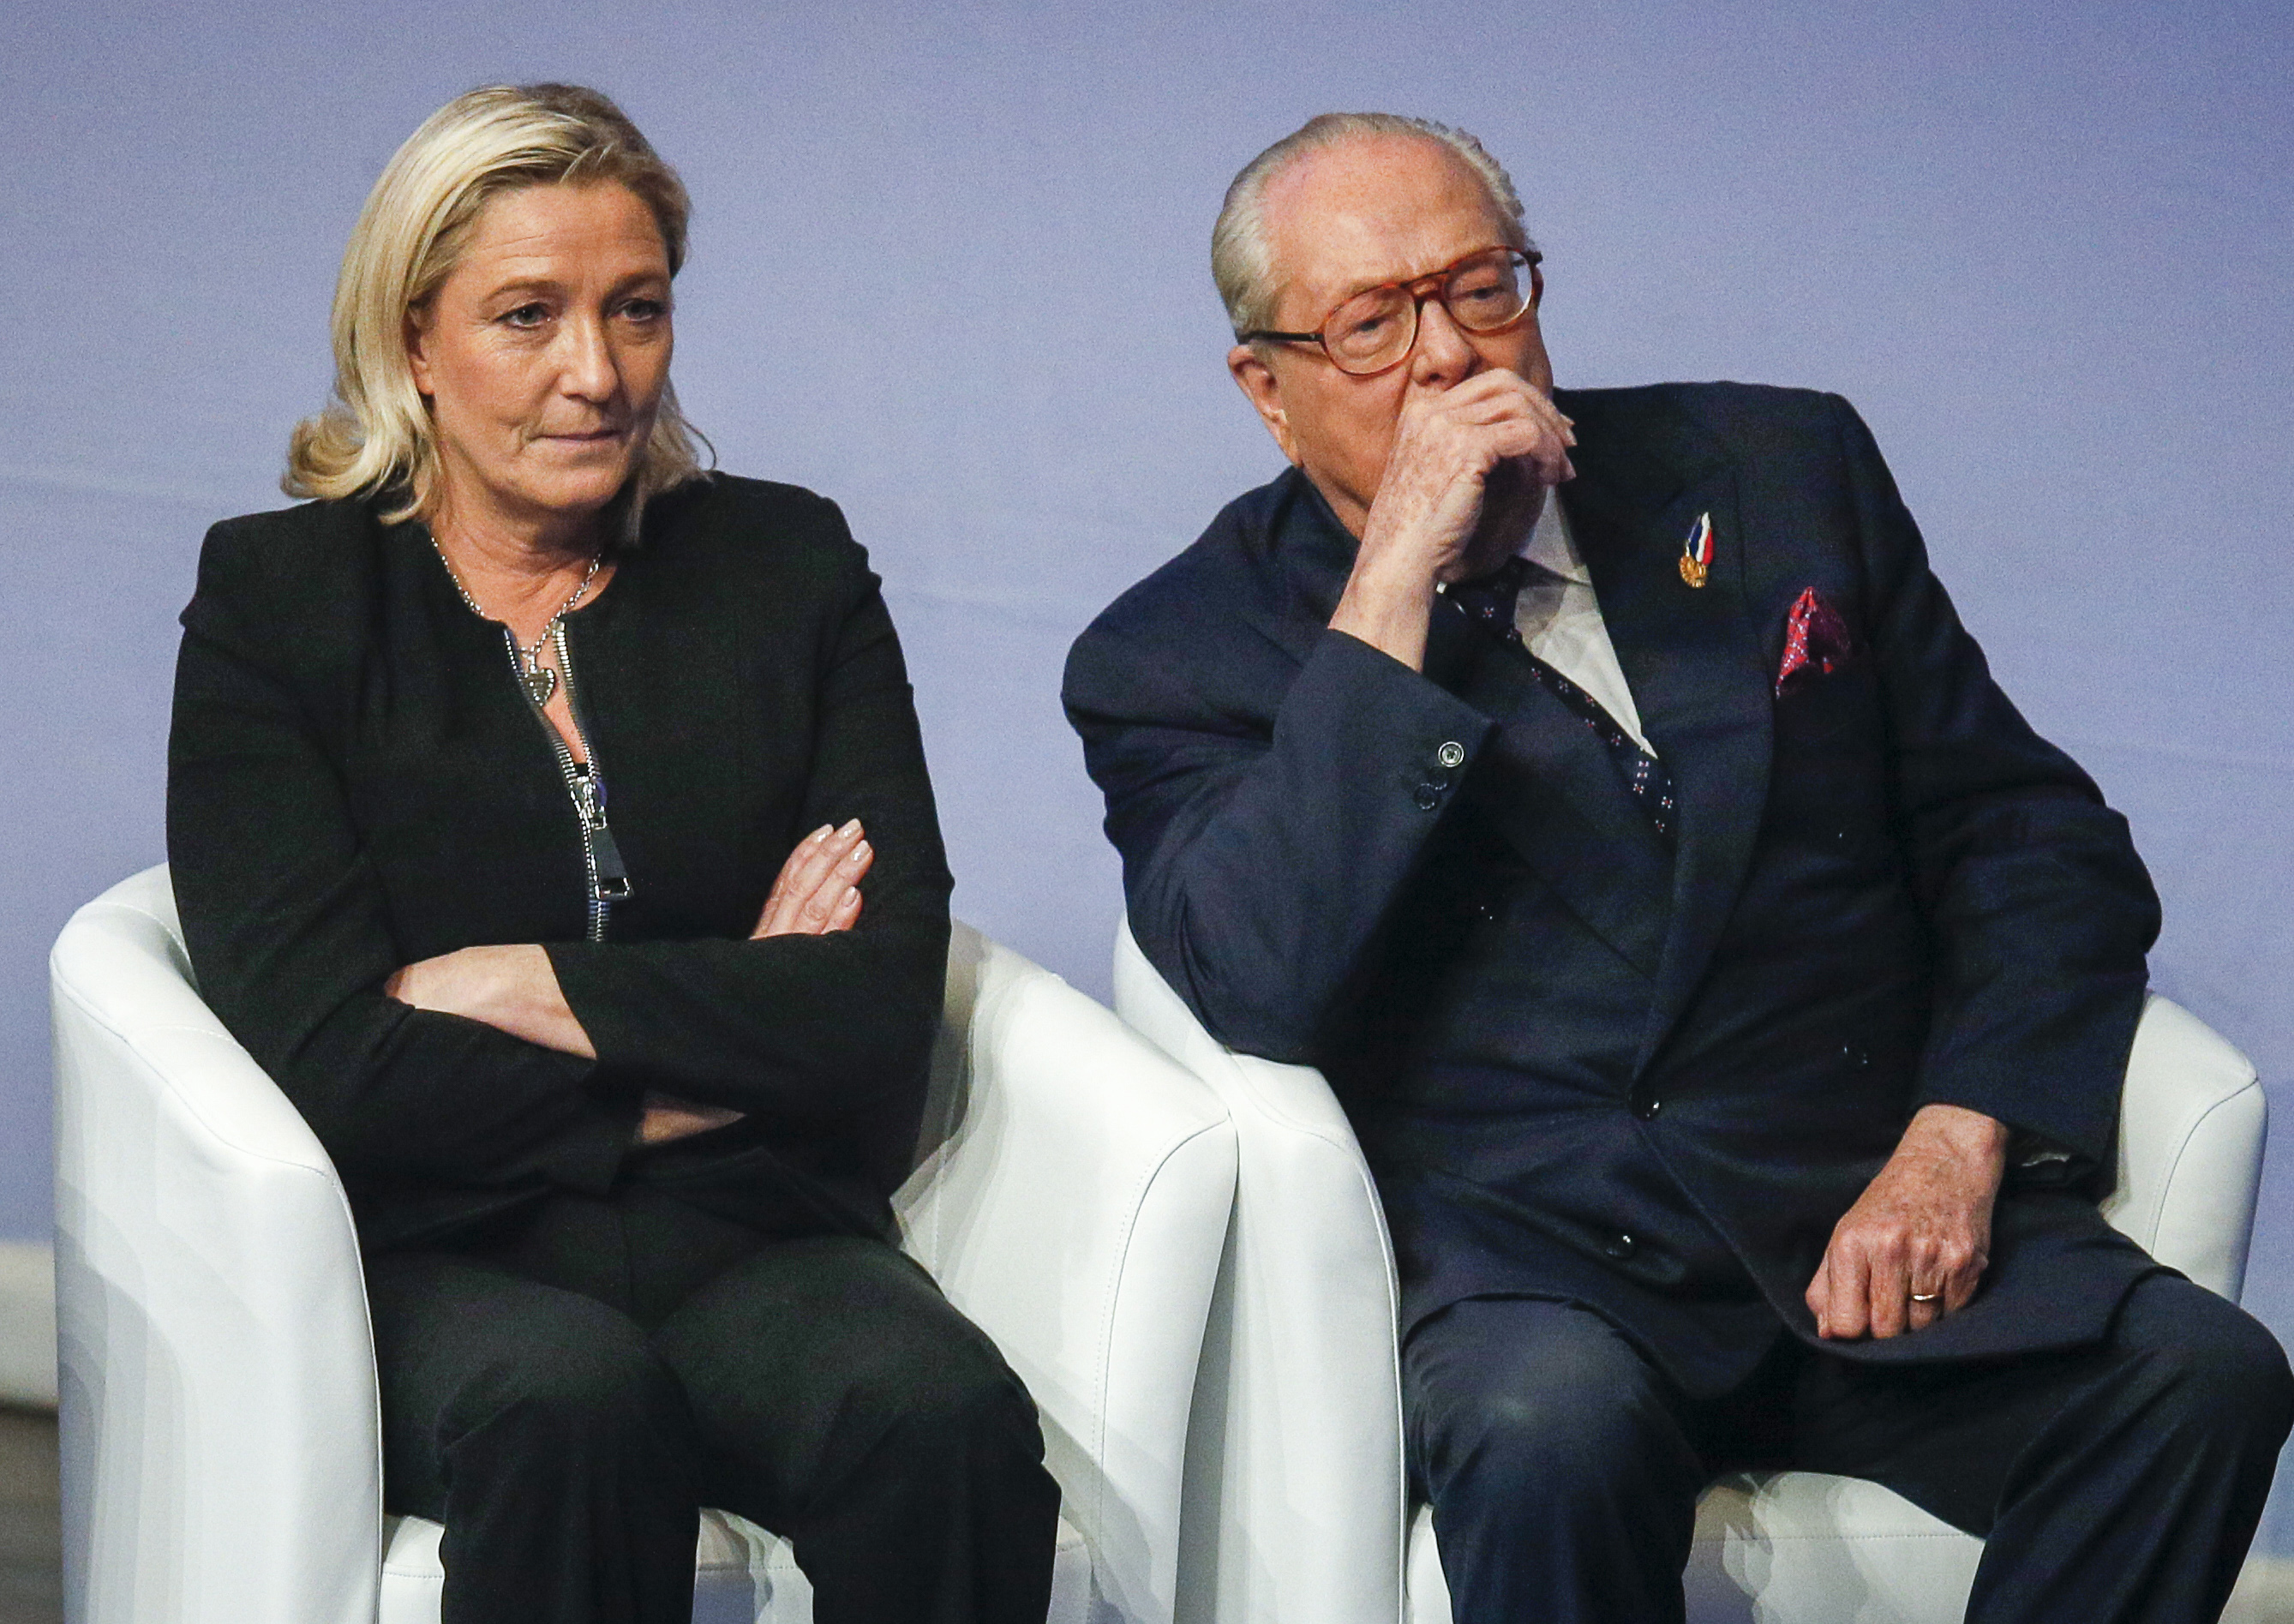 Marine Le Pen (L), France's National Front political party leader, and her father Jean-Marie Le Pen attend their party congress in Lyon, November 29, 2014. Marine Le Pen has called on her father to leave politics following his recent controversial comments. Photo by Robert Pratta/Reuters.